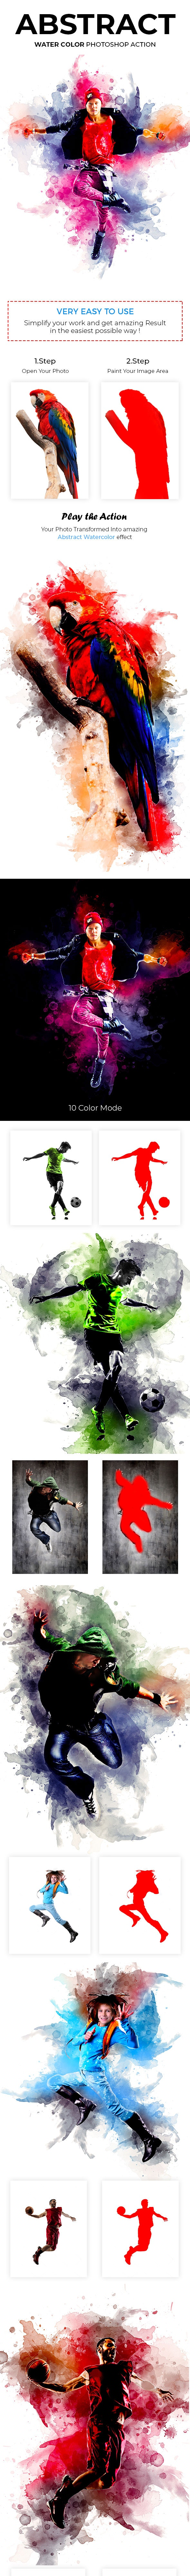 Abstract Watercolor Photoshop Action - Photo Effects Actions